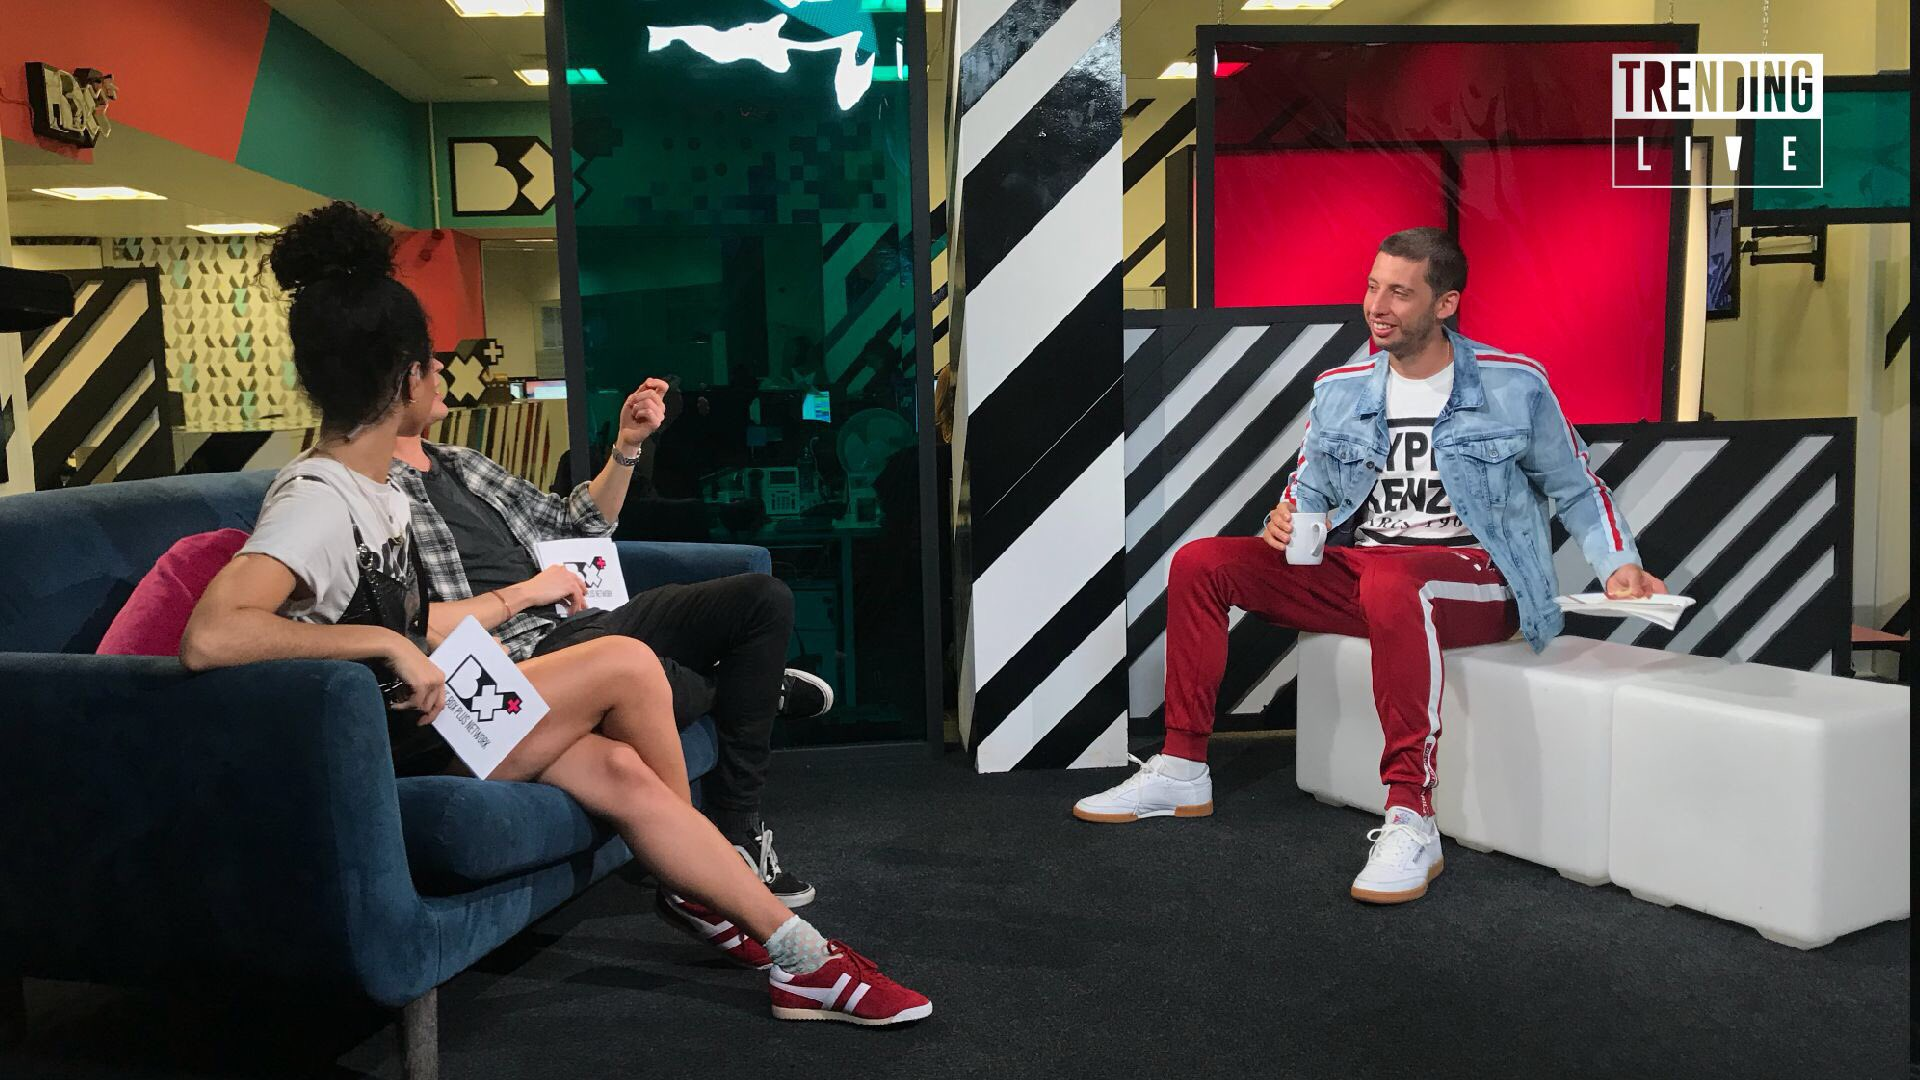 RT @TrendingLive: We're getting all The Answers  from @example on his return to music on #TrendingLive right now! https://t.co/YRQFKb6iiE